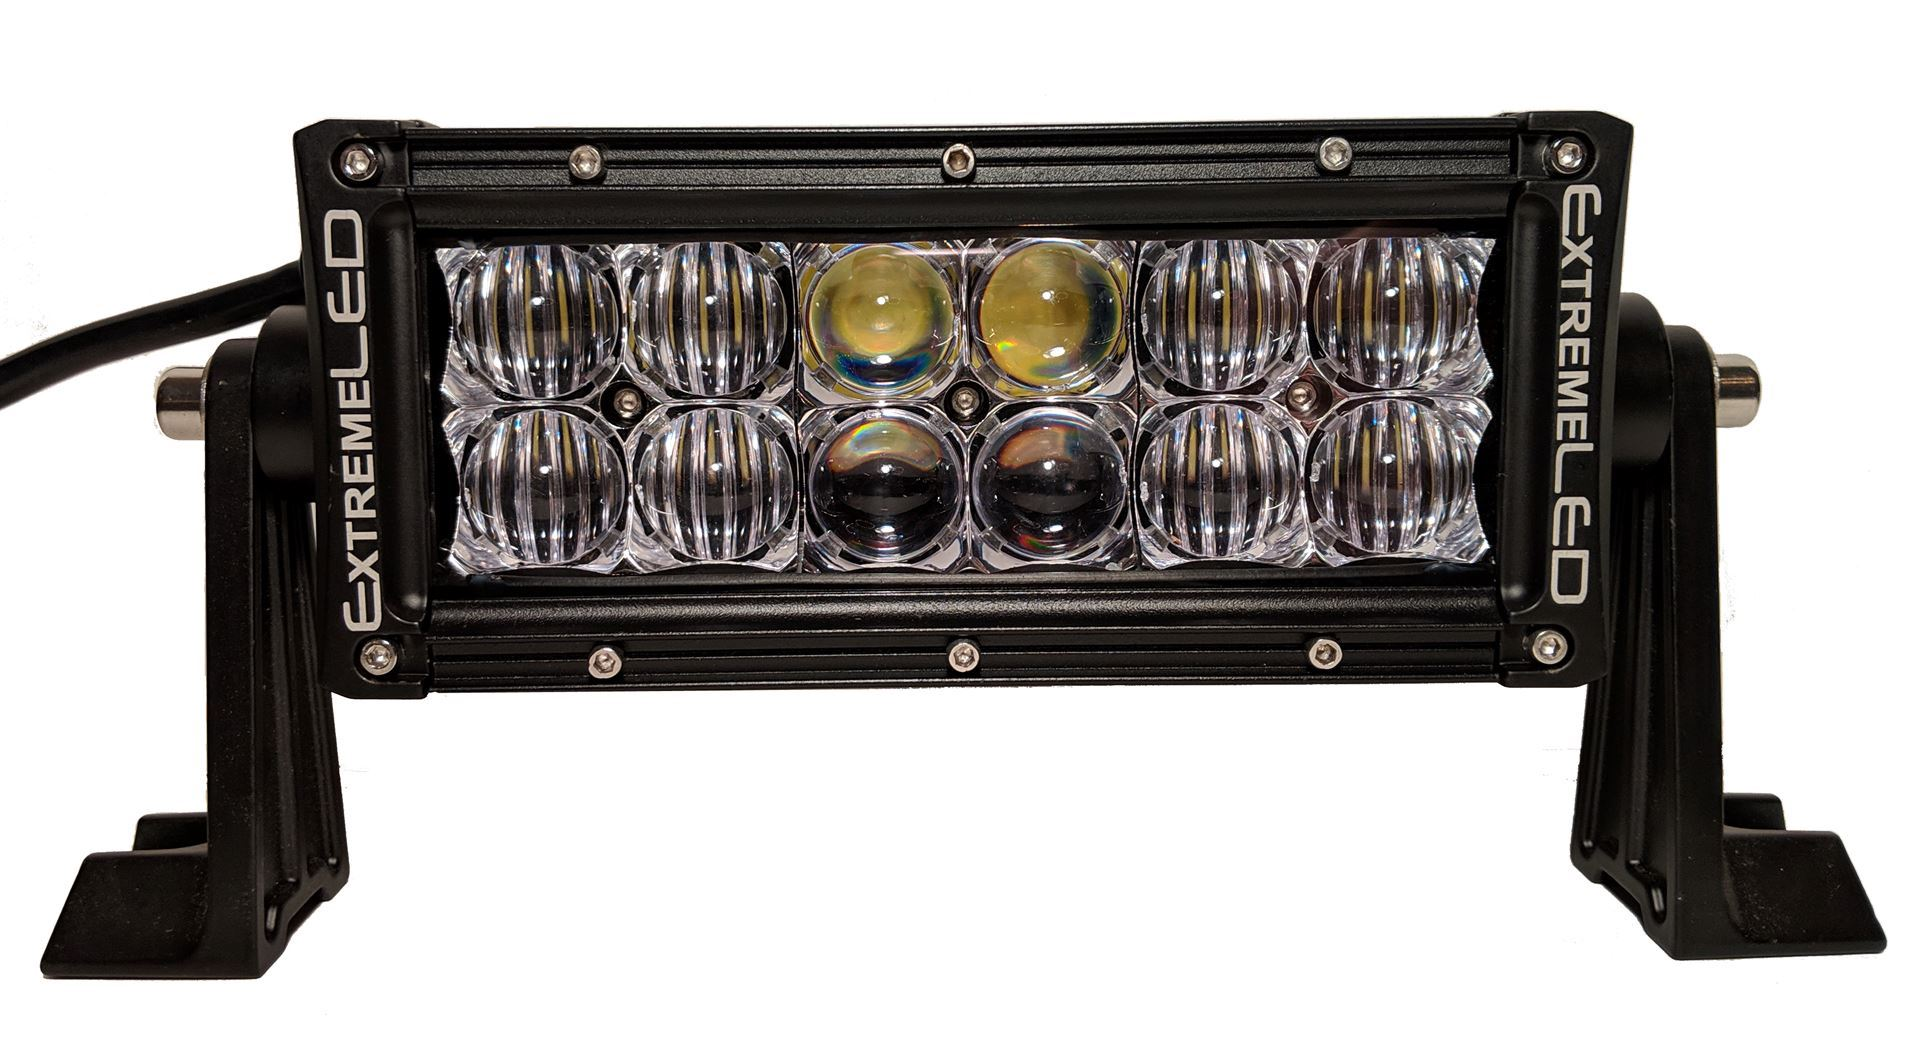 Extreme Series 5D 8 inch 5w OSRAM LED Light Bar